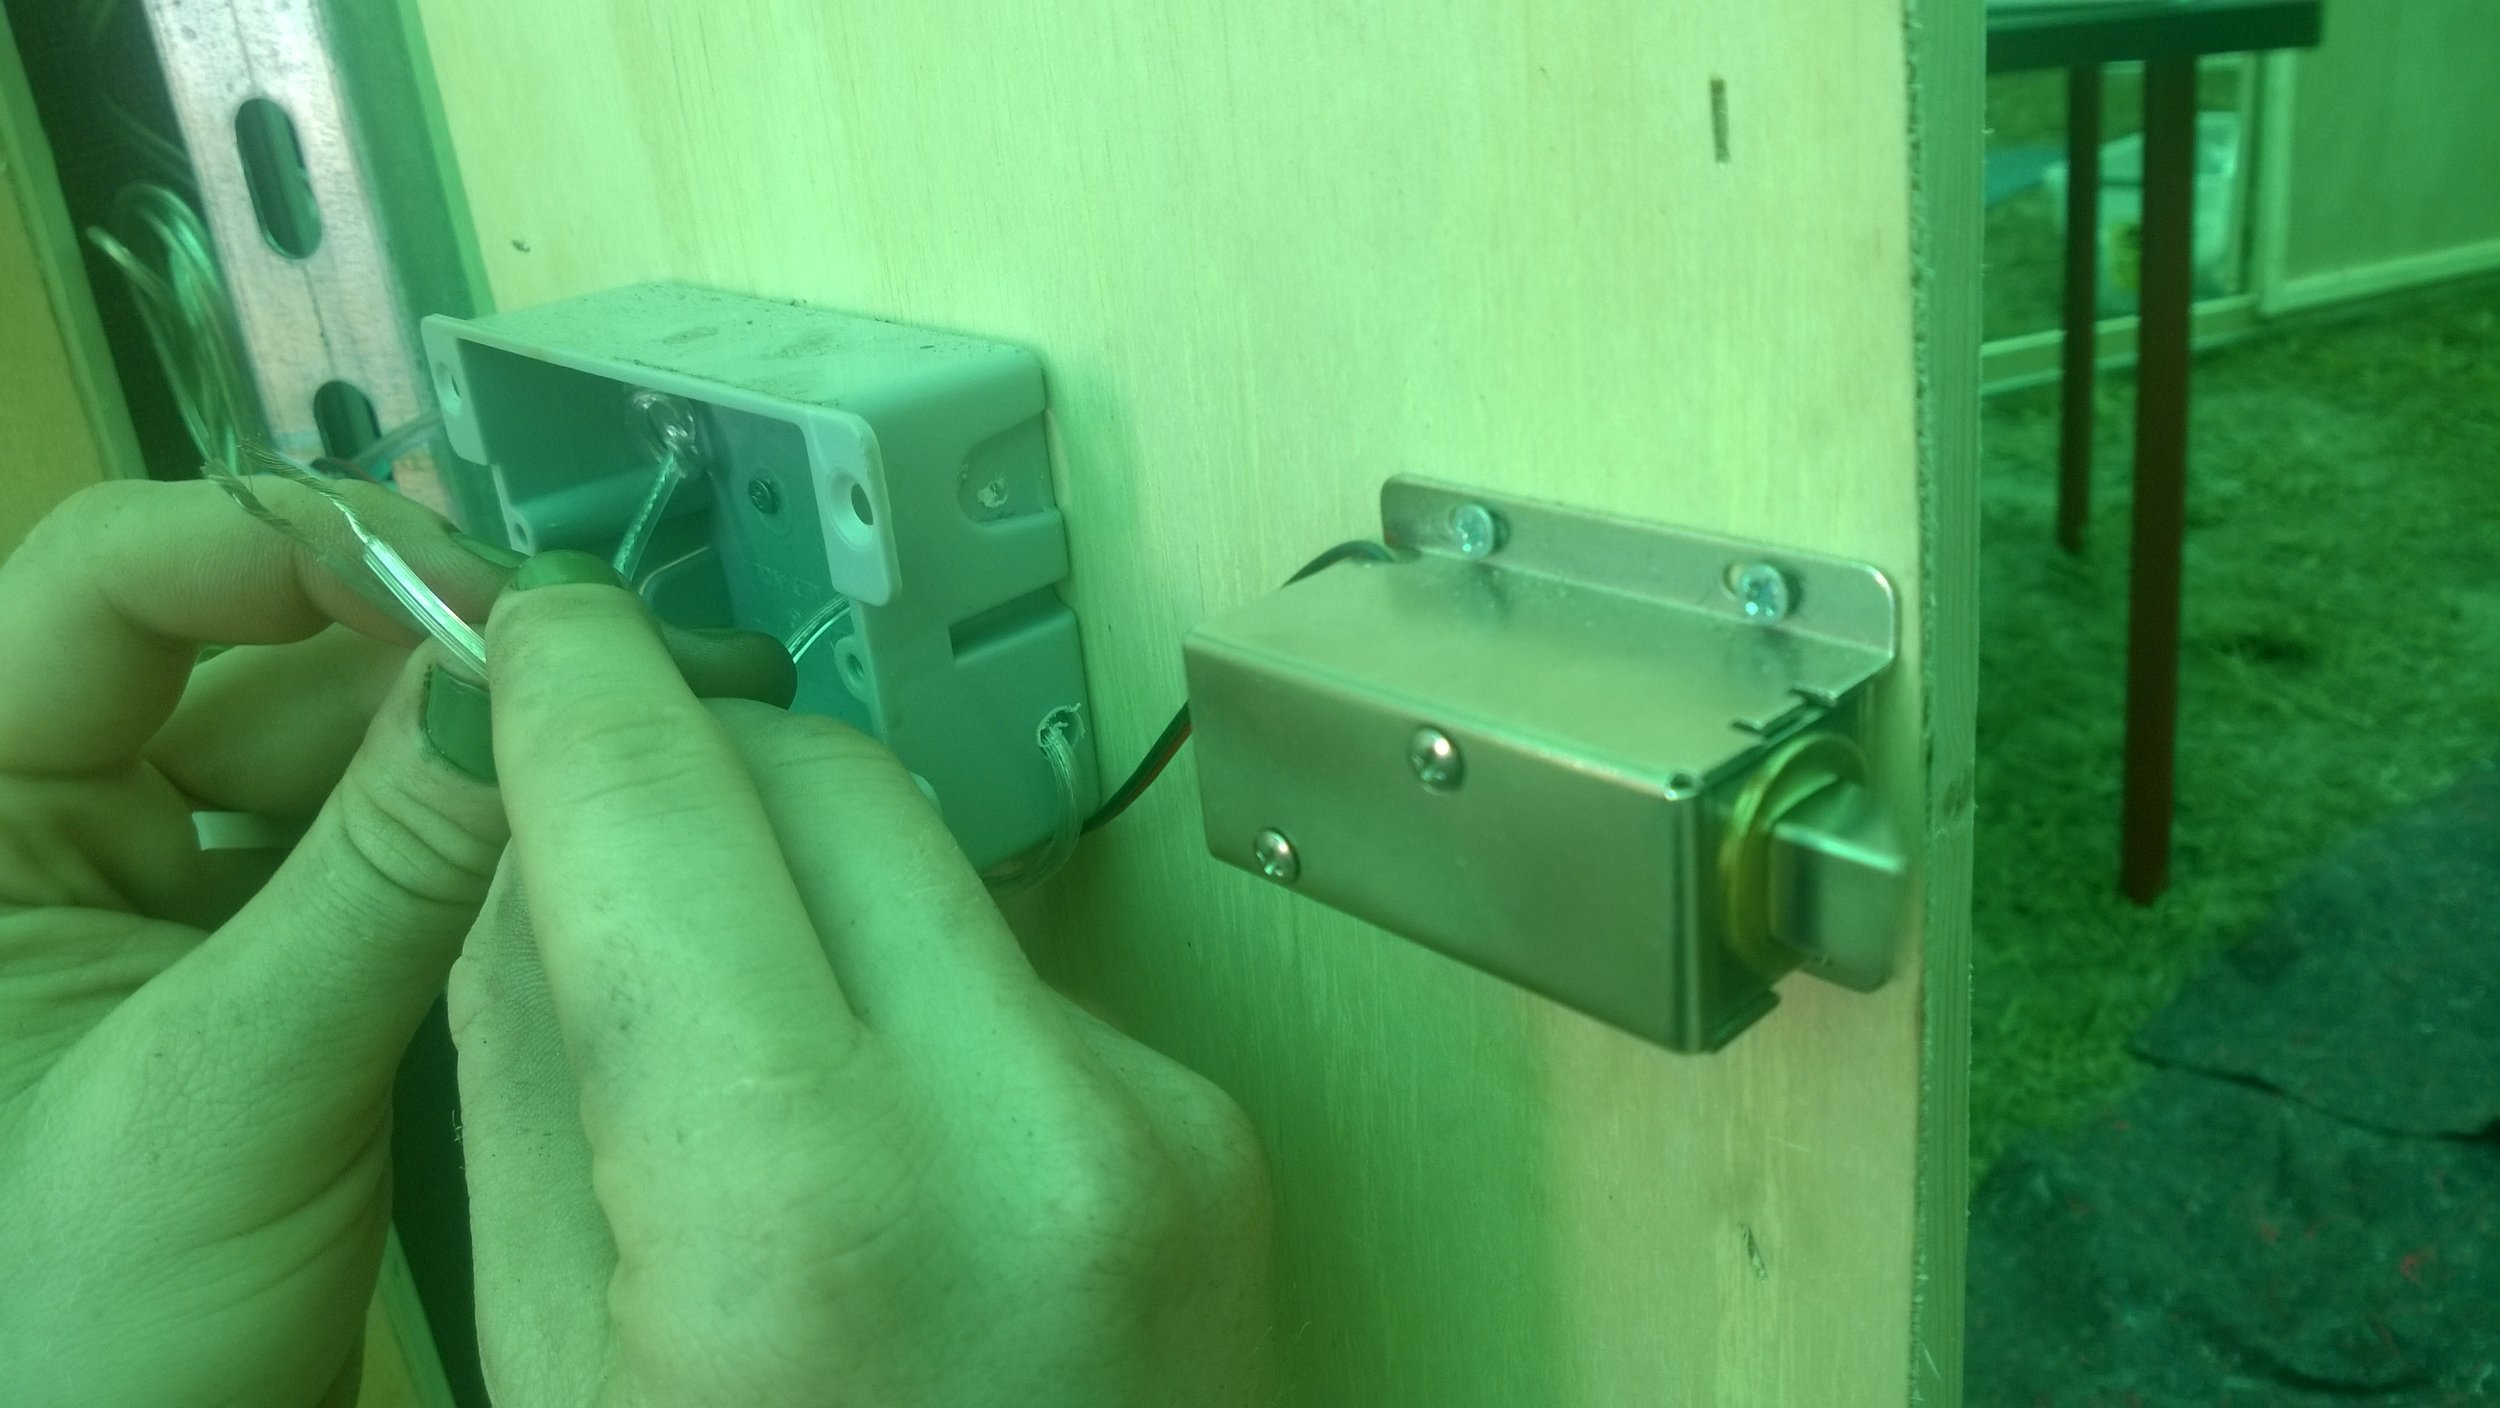 A lock which only opened by connecting two wires